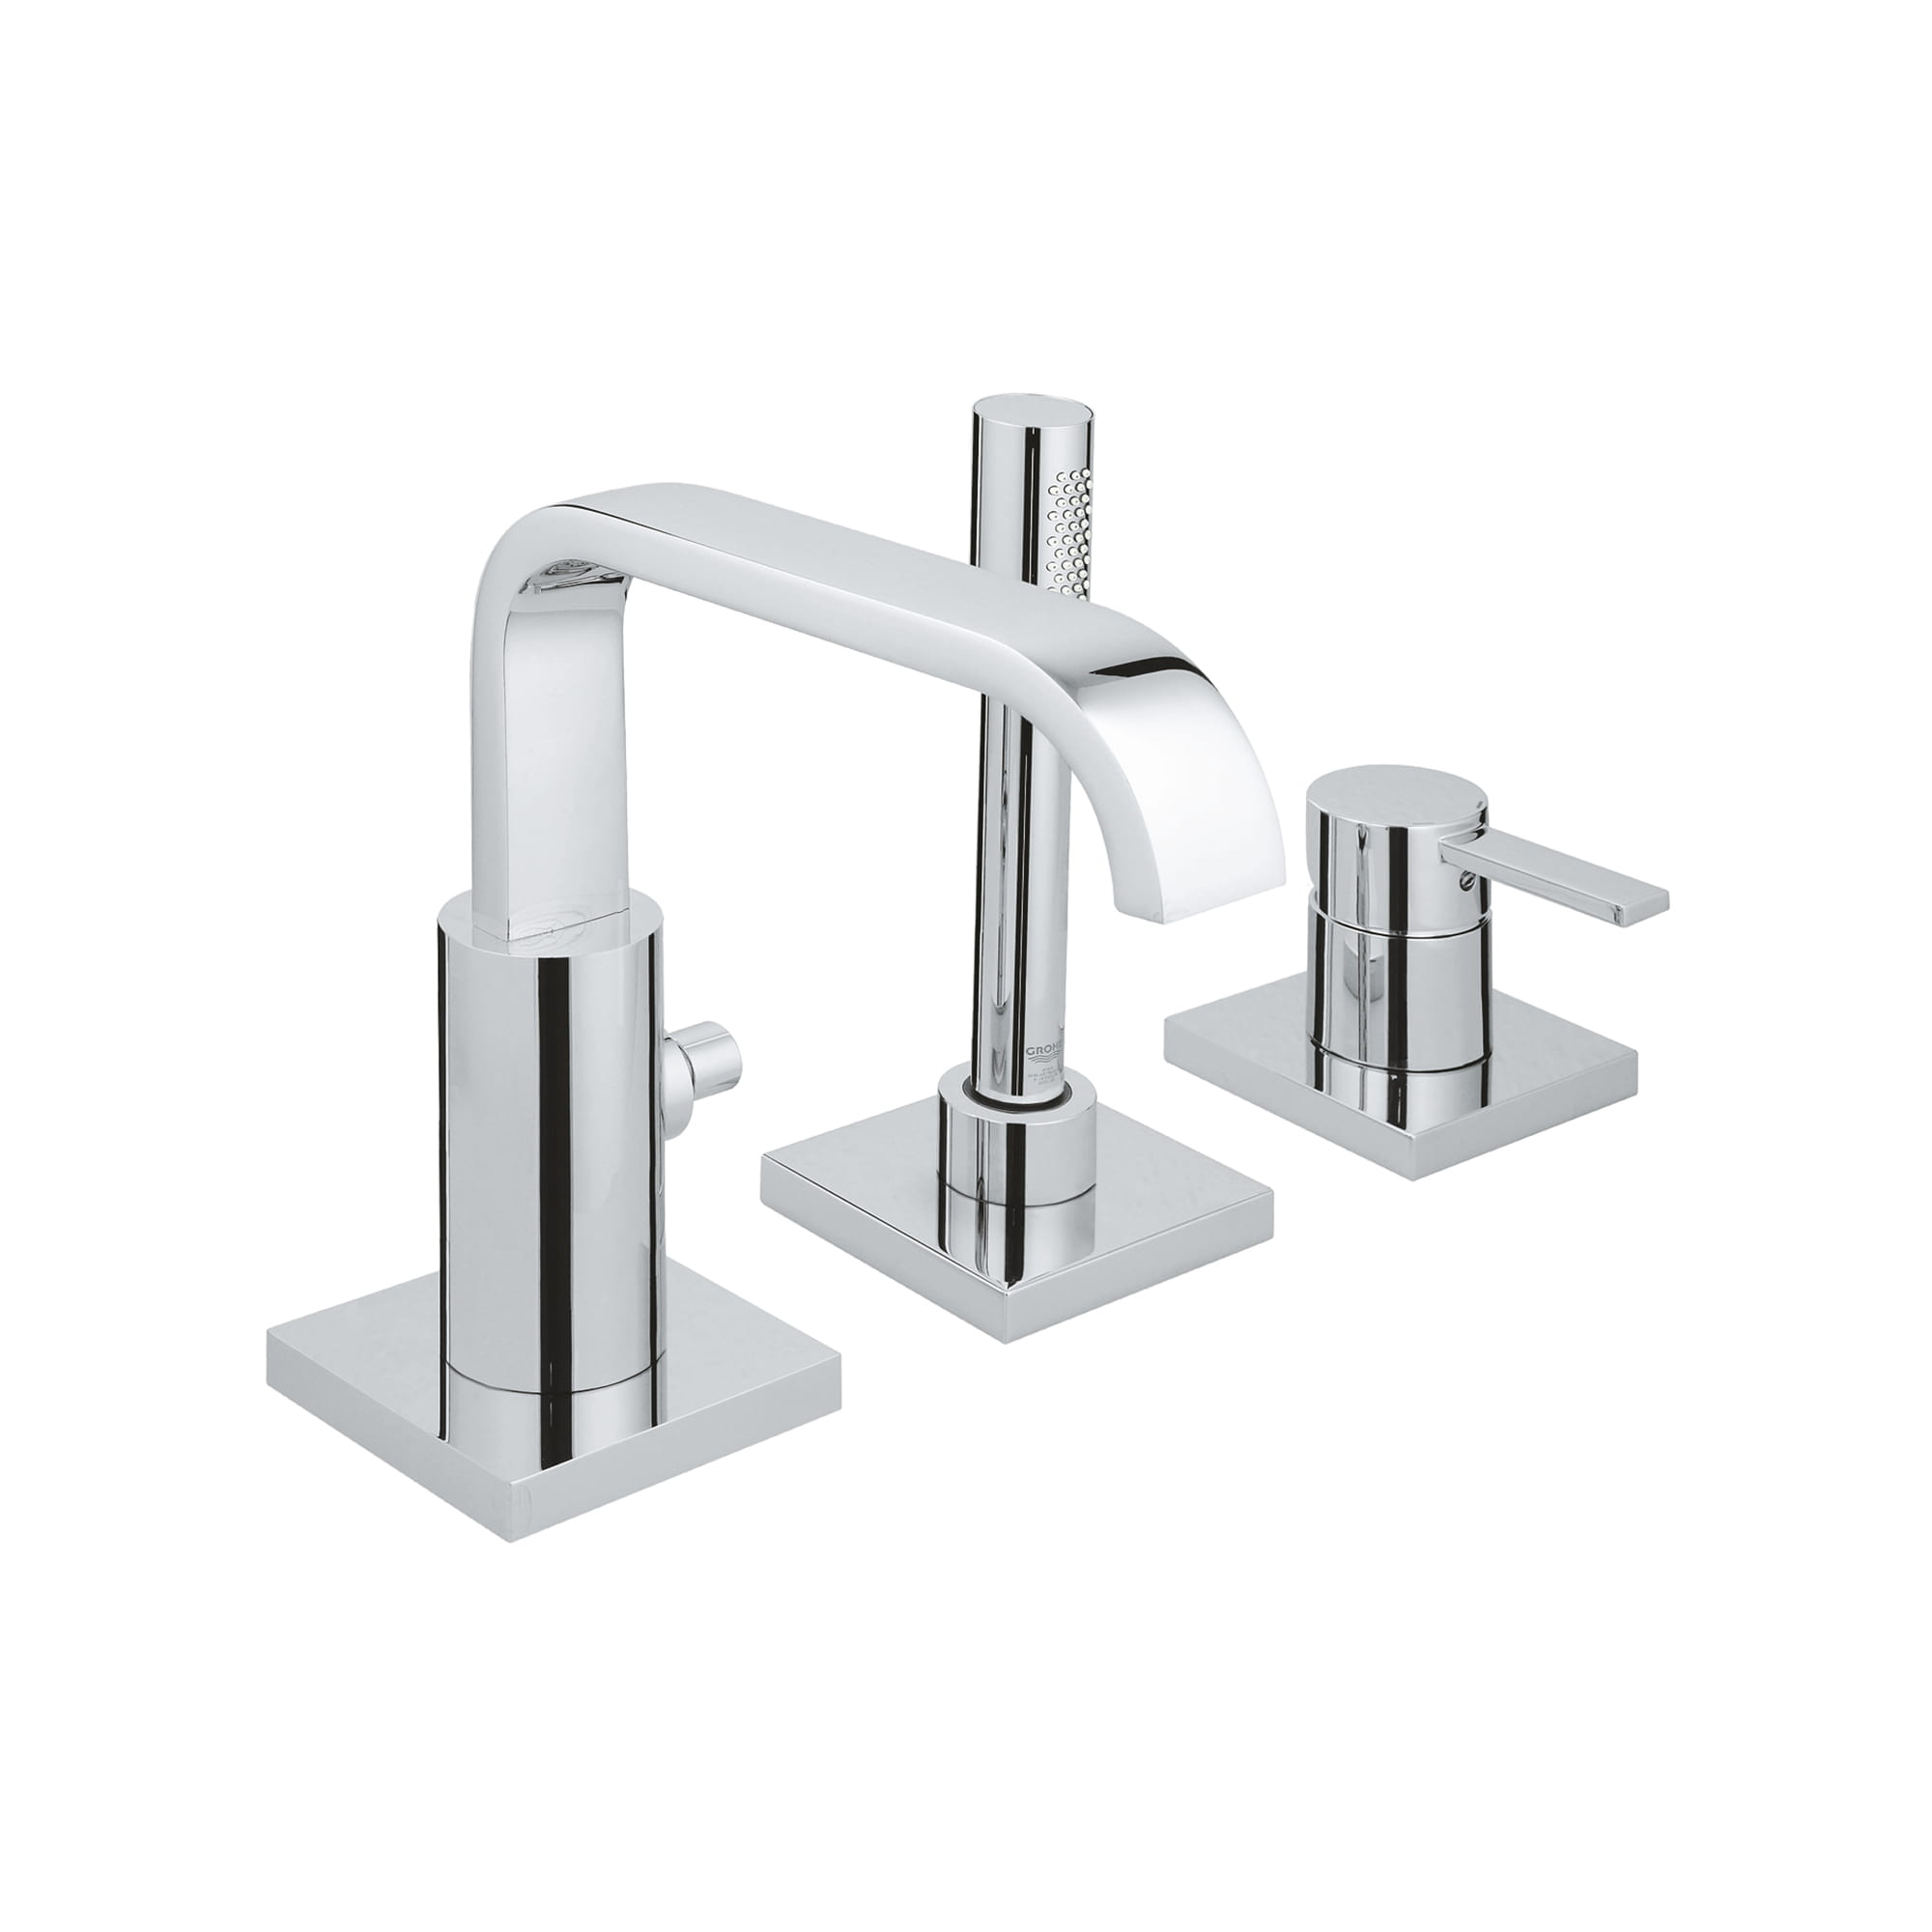 3 hole single handle deck mount roman tub faucet with hand shower